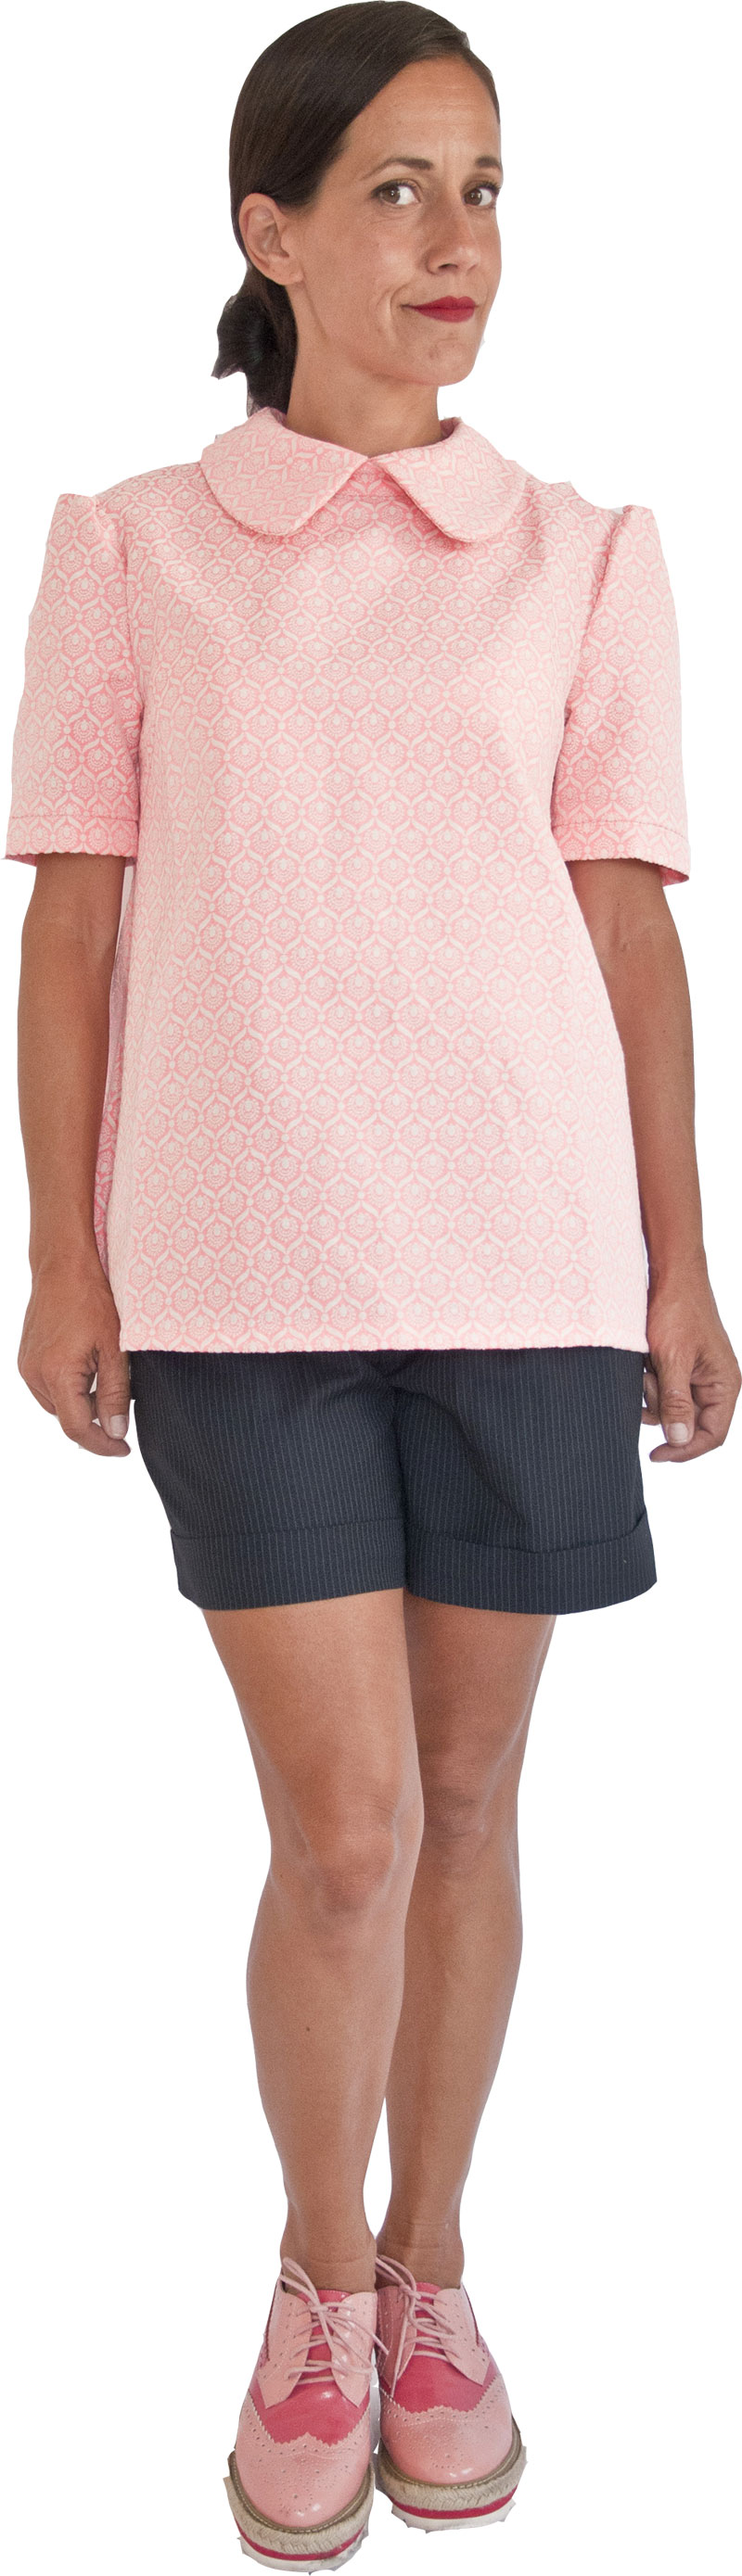 Short Joe Tennis Collection Jolie Madame